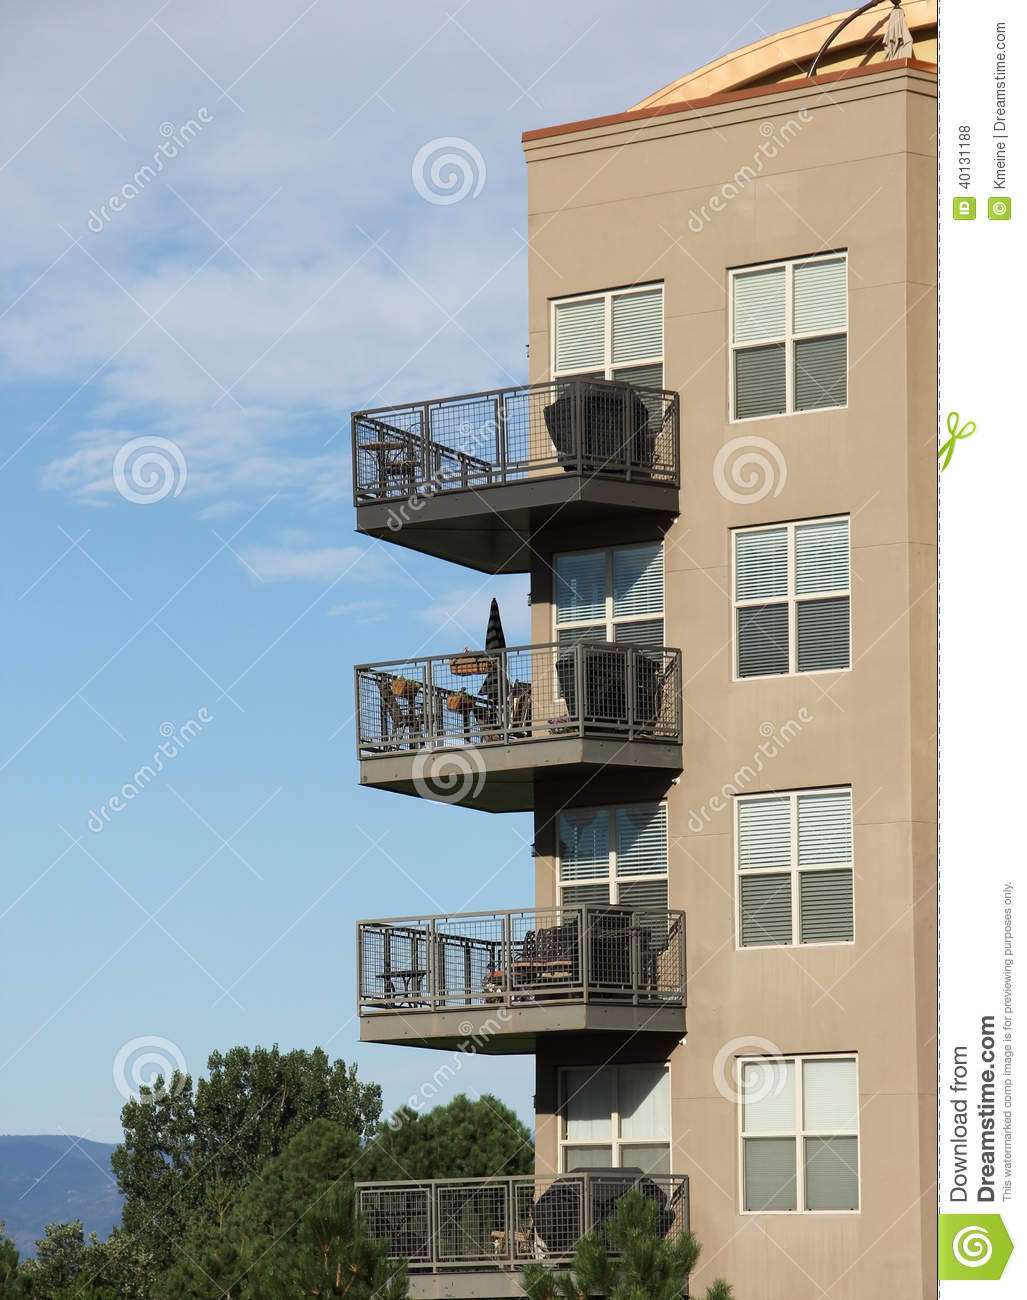 Balconies on modern architecture apartment complex stock for Apartment balcony grill design